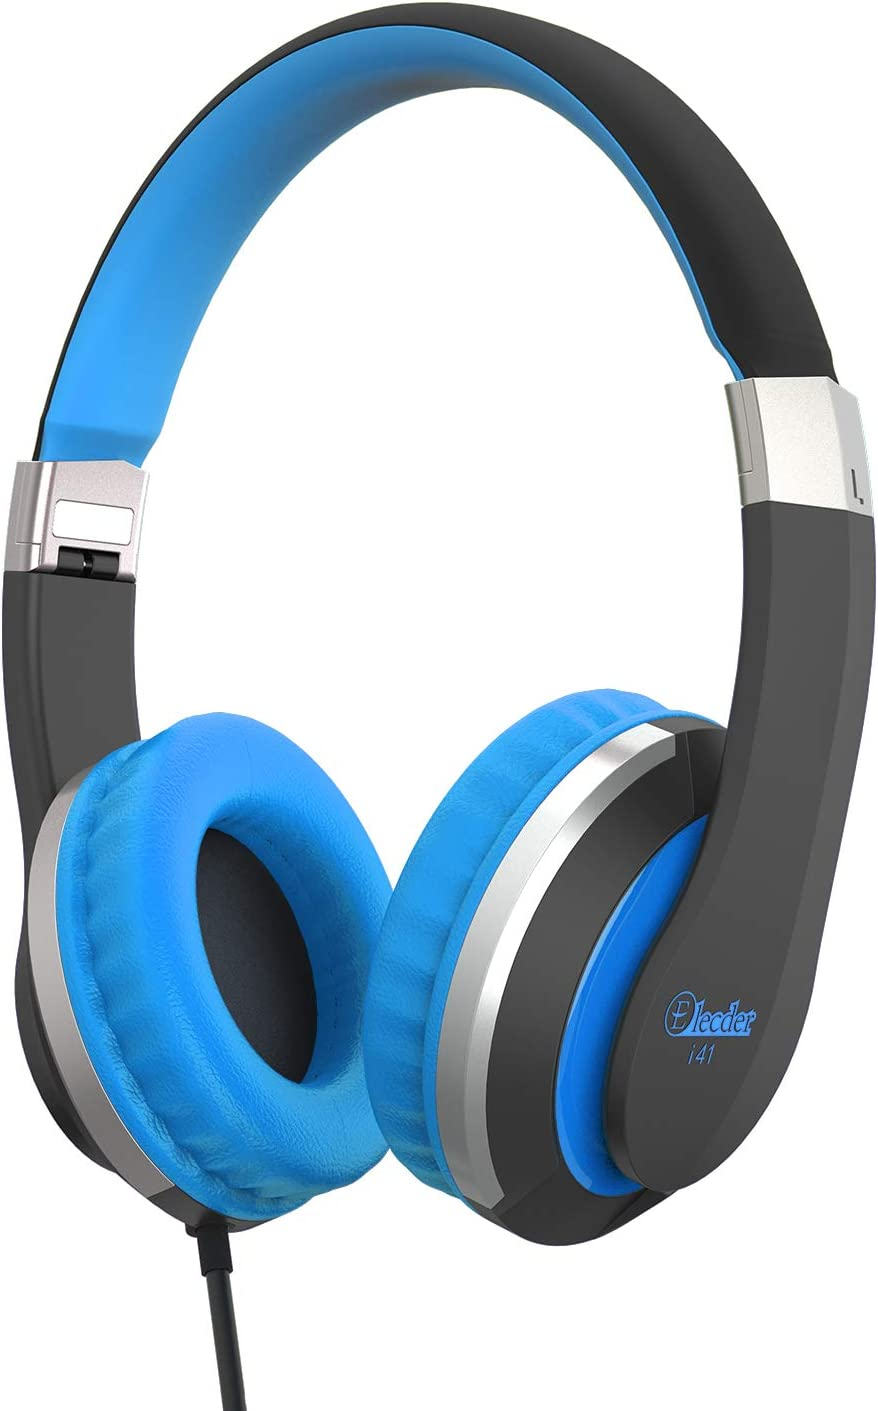 Kids Headphones Elecder i41 Headphones for Kids Children Girls Boys Teens Foldable Adjustable On Ear Headphones with 3.5mm Jack for iPad Cellphones Computer Kindle Airplane School Black&Blue